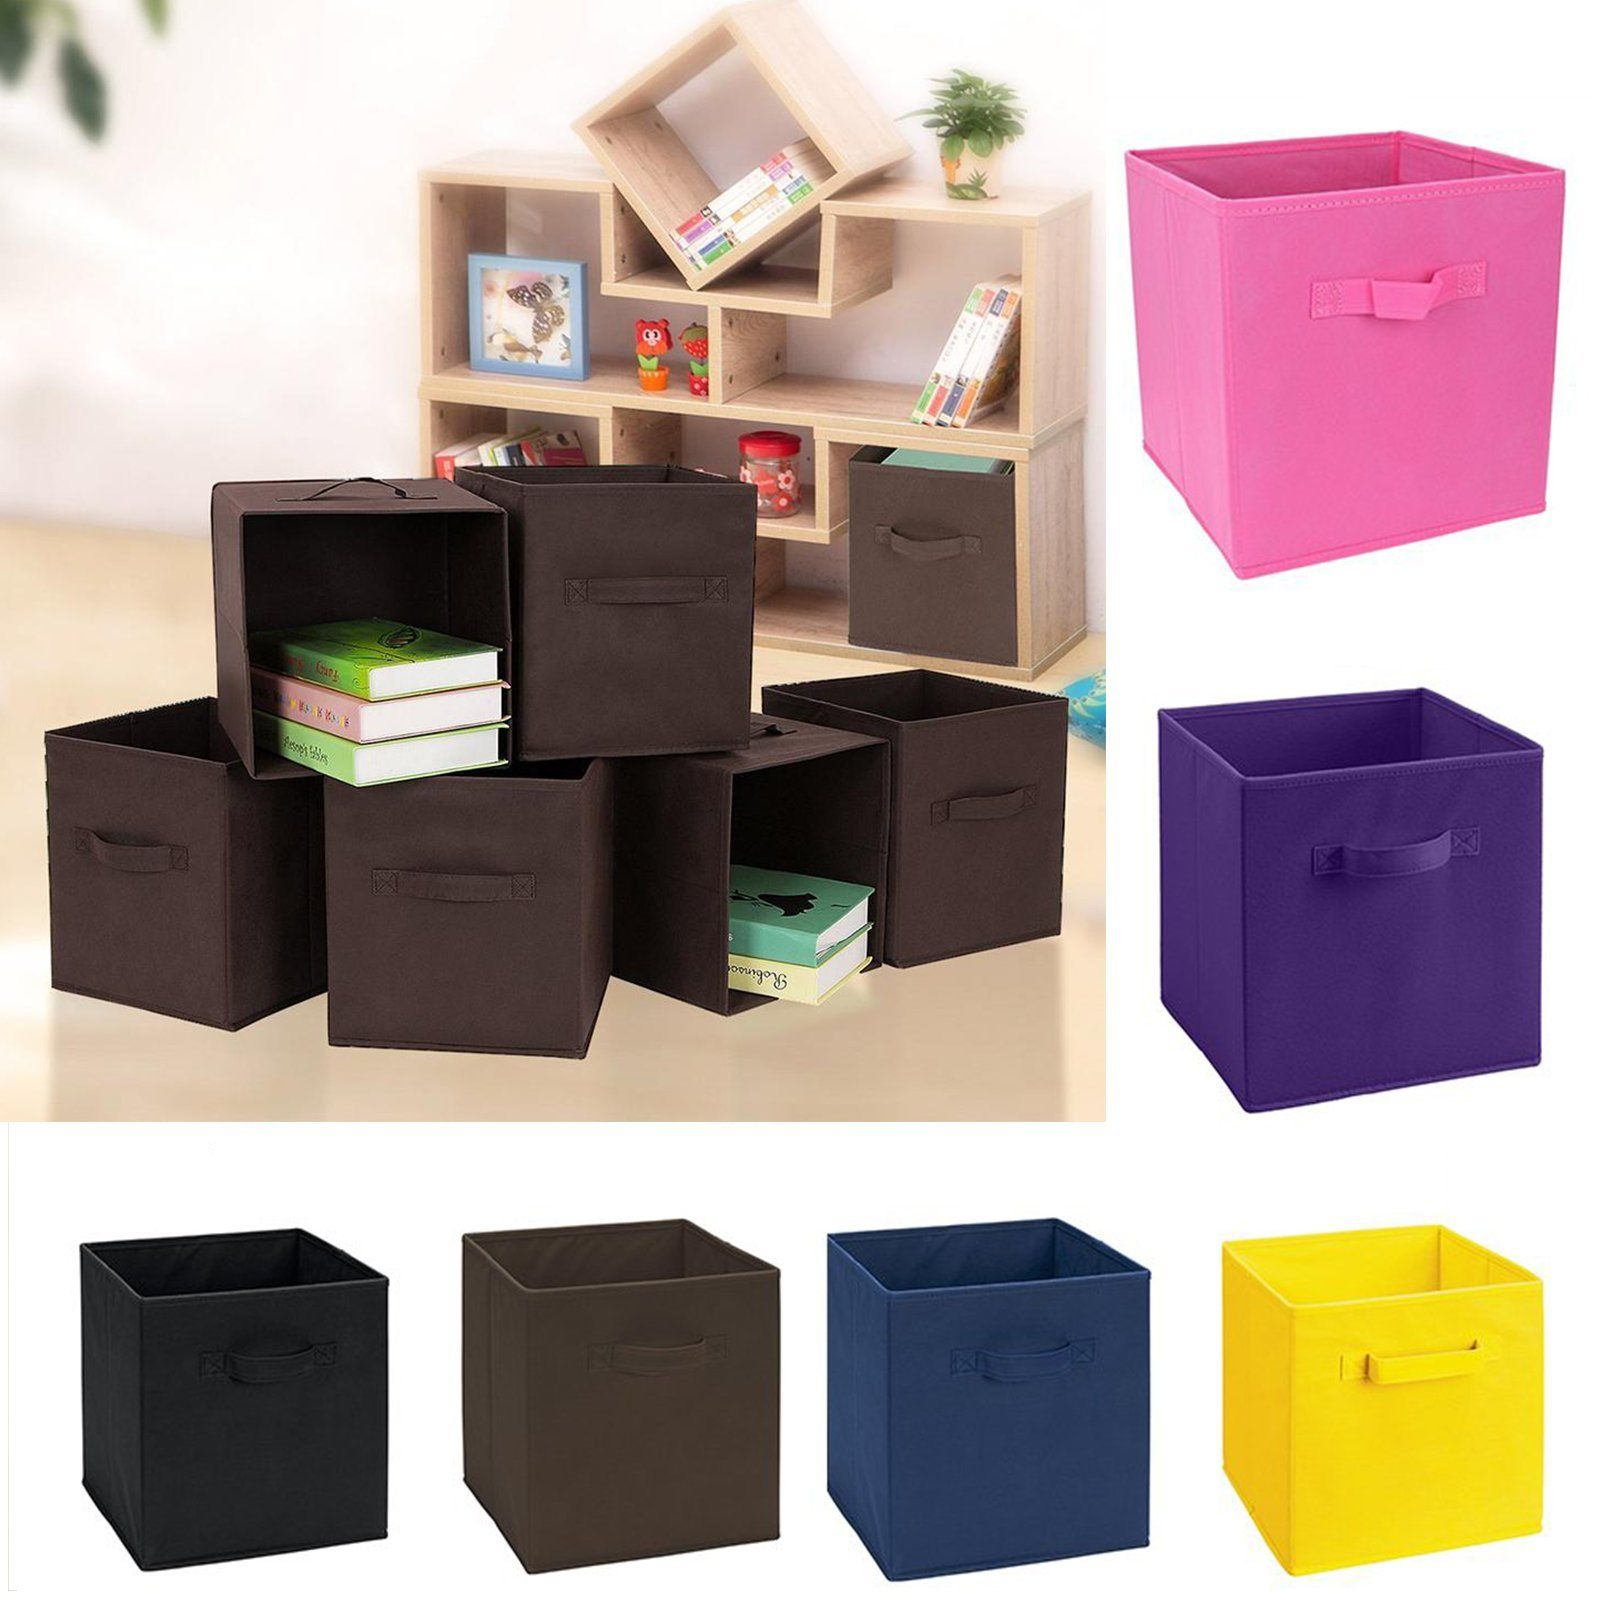 foldable storage collapsible folding box case home clothes organizer fabric cube ebay. Black Bedroom Furniture Sets. Home Design Ideas